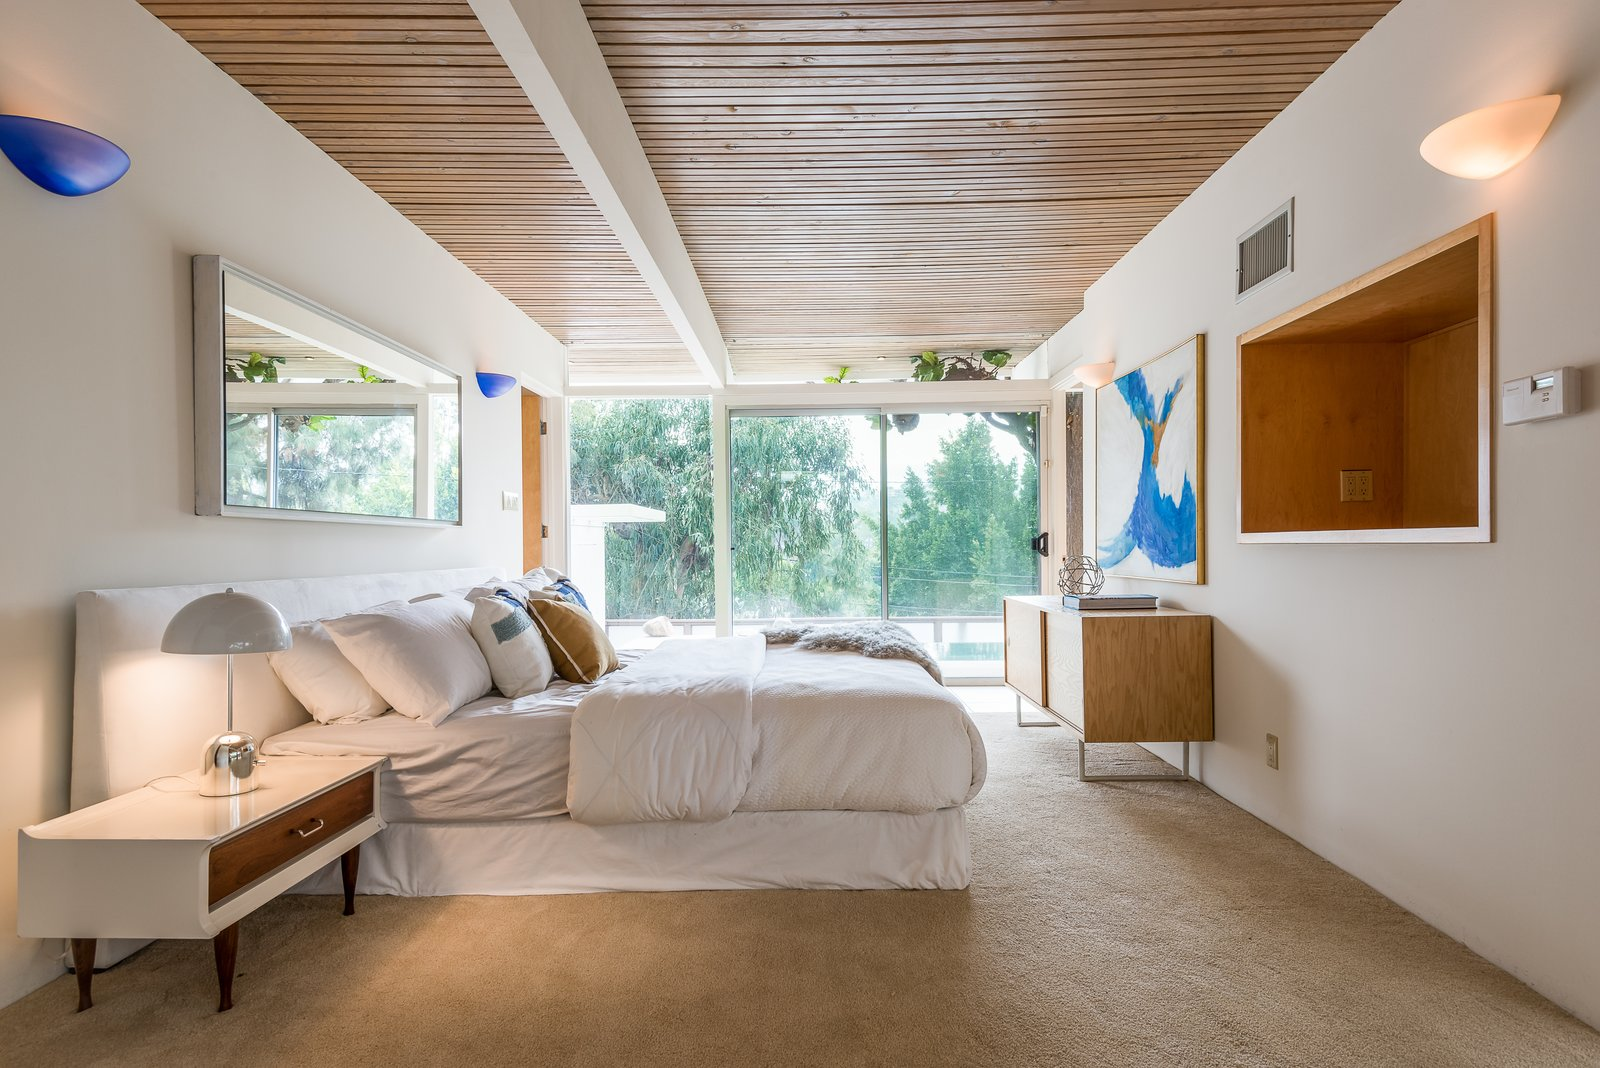 Bedroom, Night Stands, Table, Bed, Lamps, Wall, Carpet, and Storage A bedroom that looks out to canyon views.  Best Bedroom Storage Photos from Composer Paul Buckmaster's Midcentury Gem Asks $1.39M